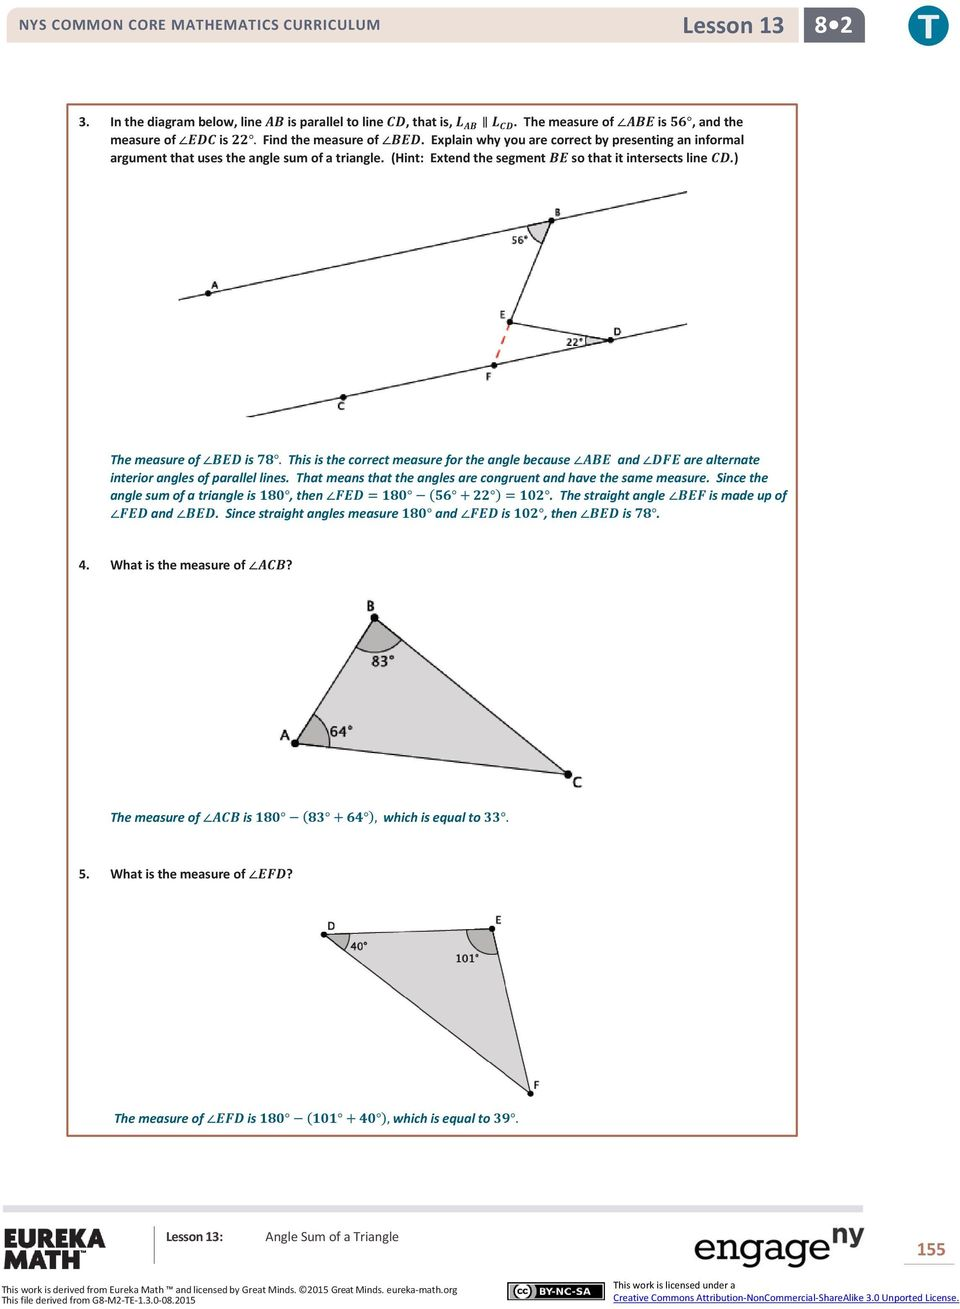 Lesson 13: Angle Sum of a Triangle - PDF